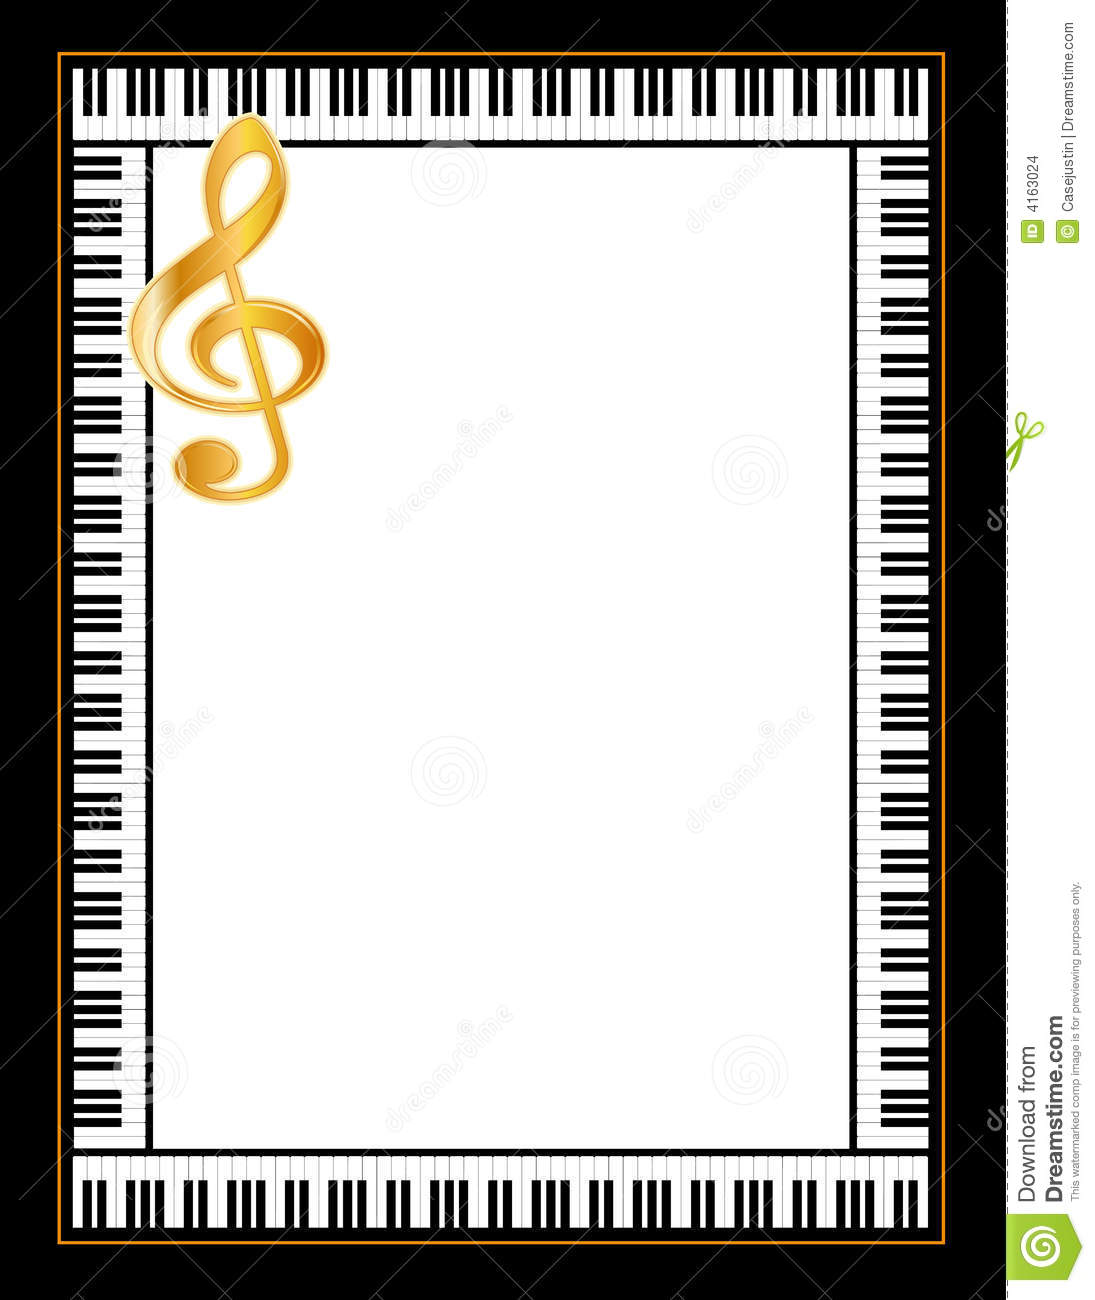 ebony and ivory piano poster  gold clef stock images piano keyboard clipart piano keys clip art silhouette